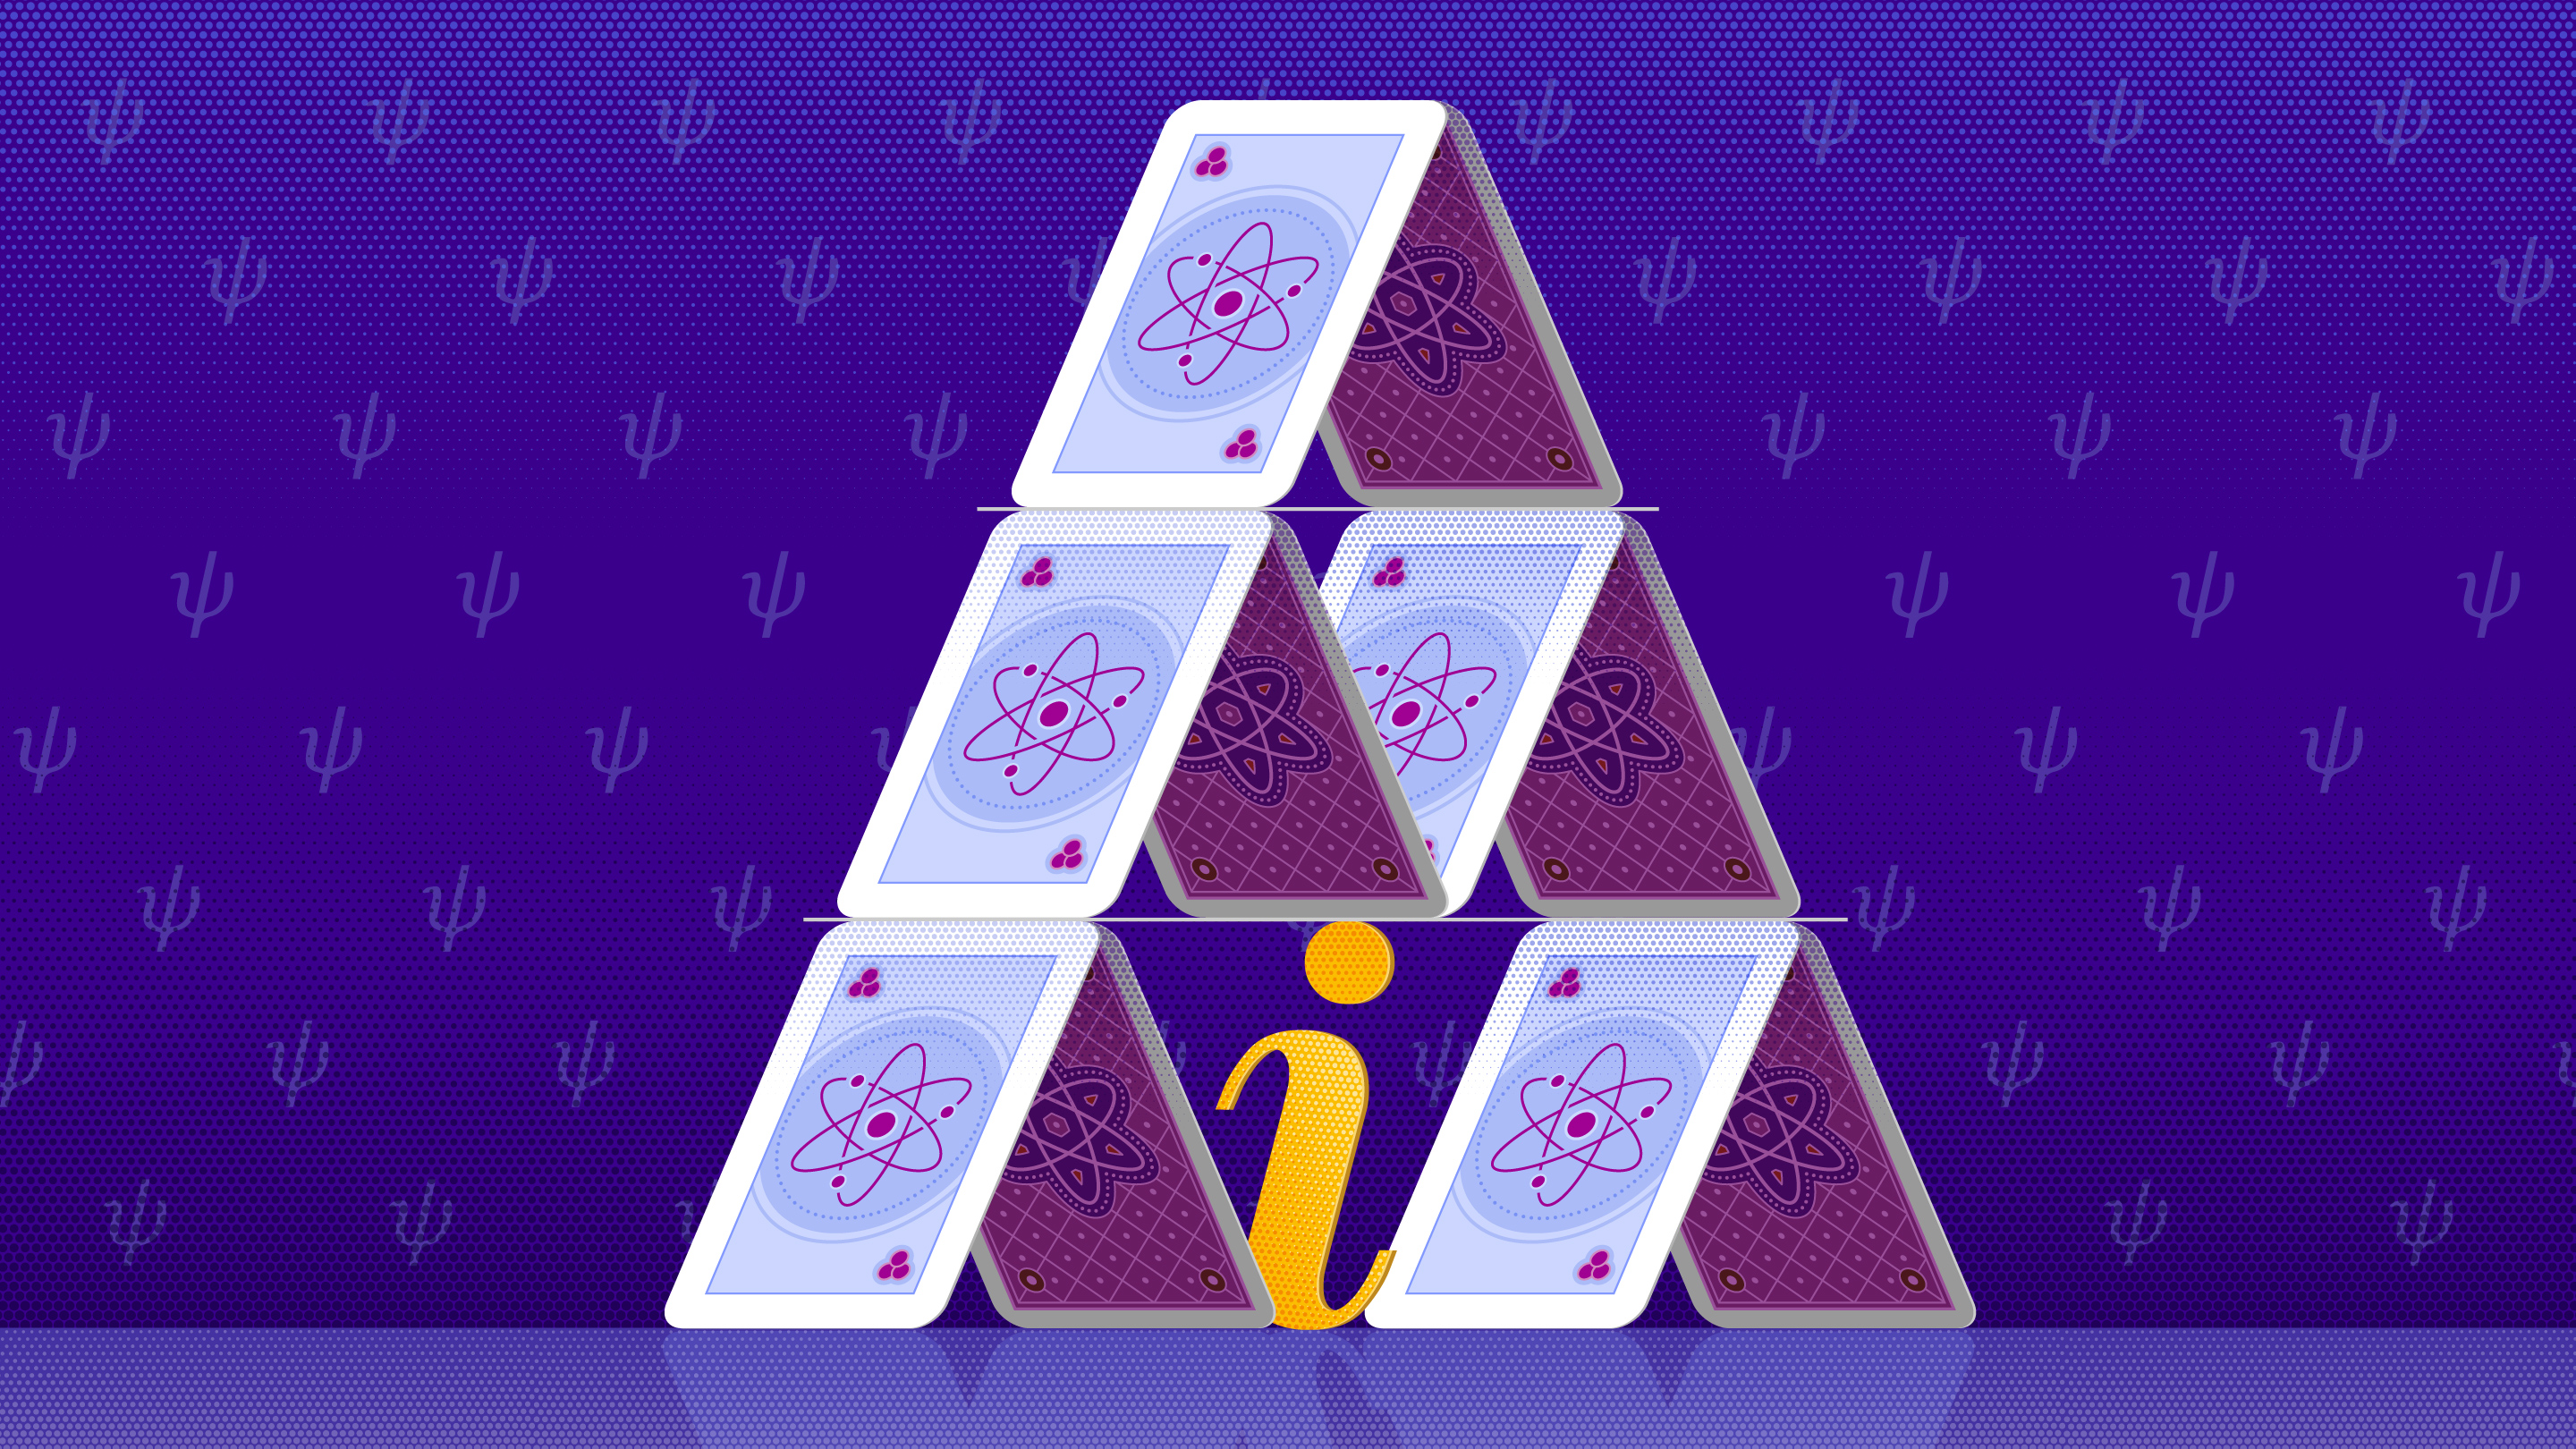 A house of cards propped up by a letter i, the unit of imaginary numbers.